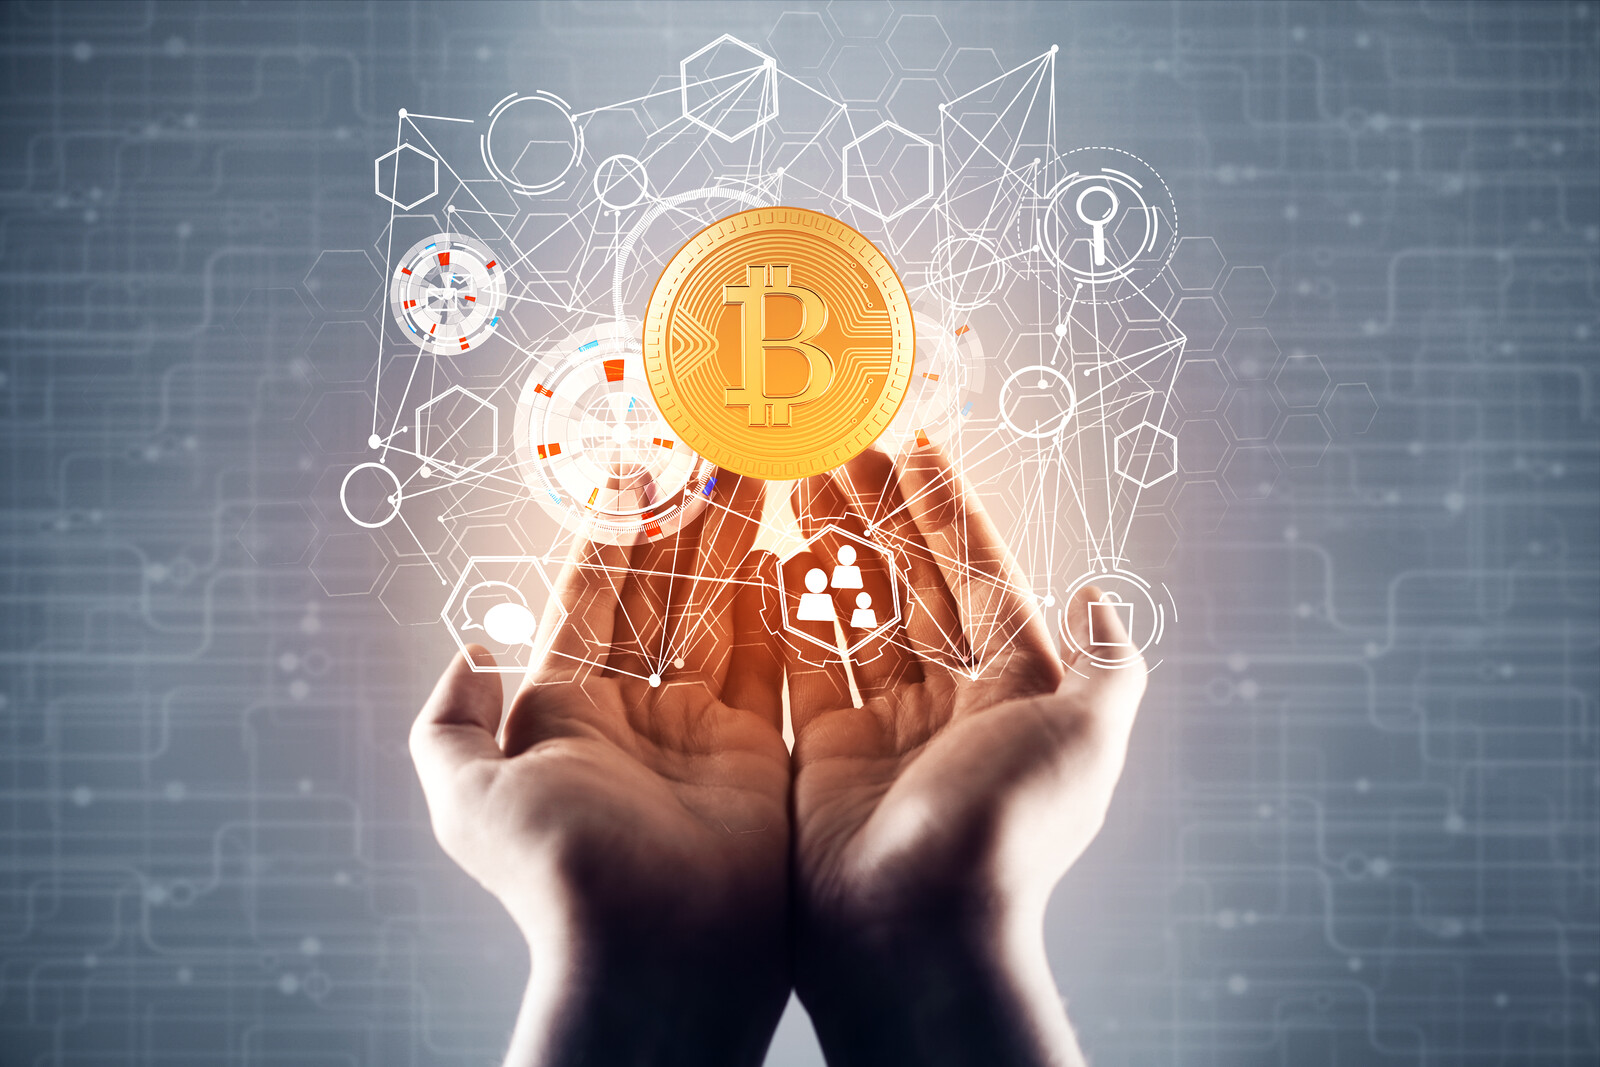 Top 5 Cryptocurrency Scams Seniors Need To Know About - hands holding bitcoin hologram with a blurry circuit hologram in the background